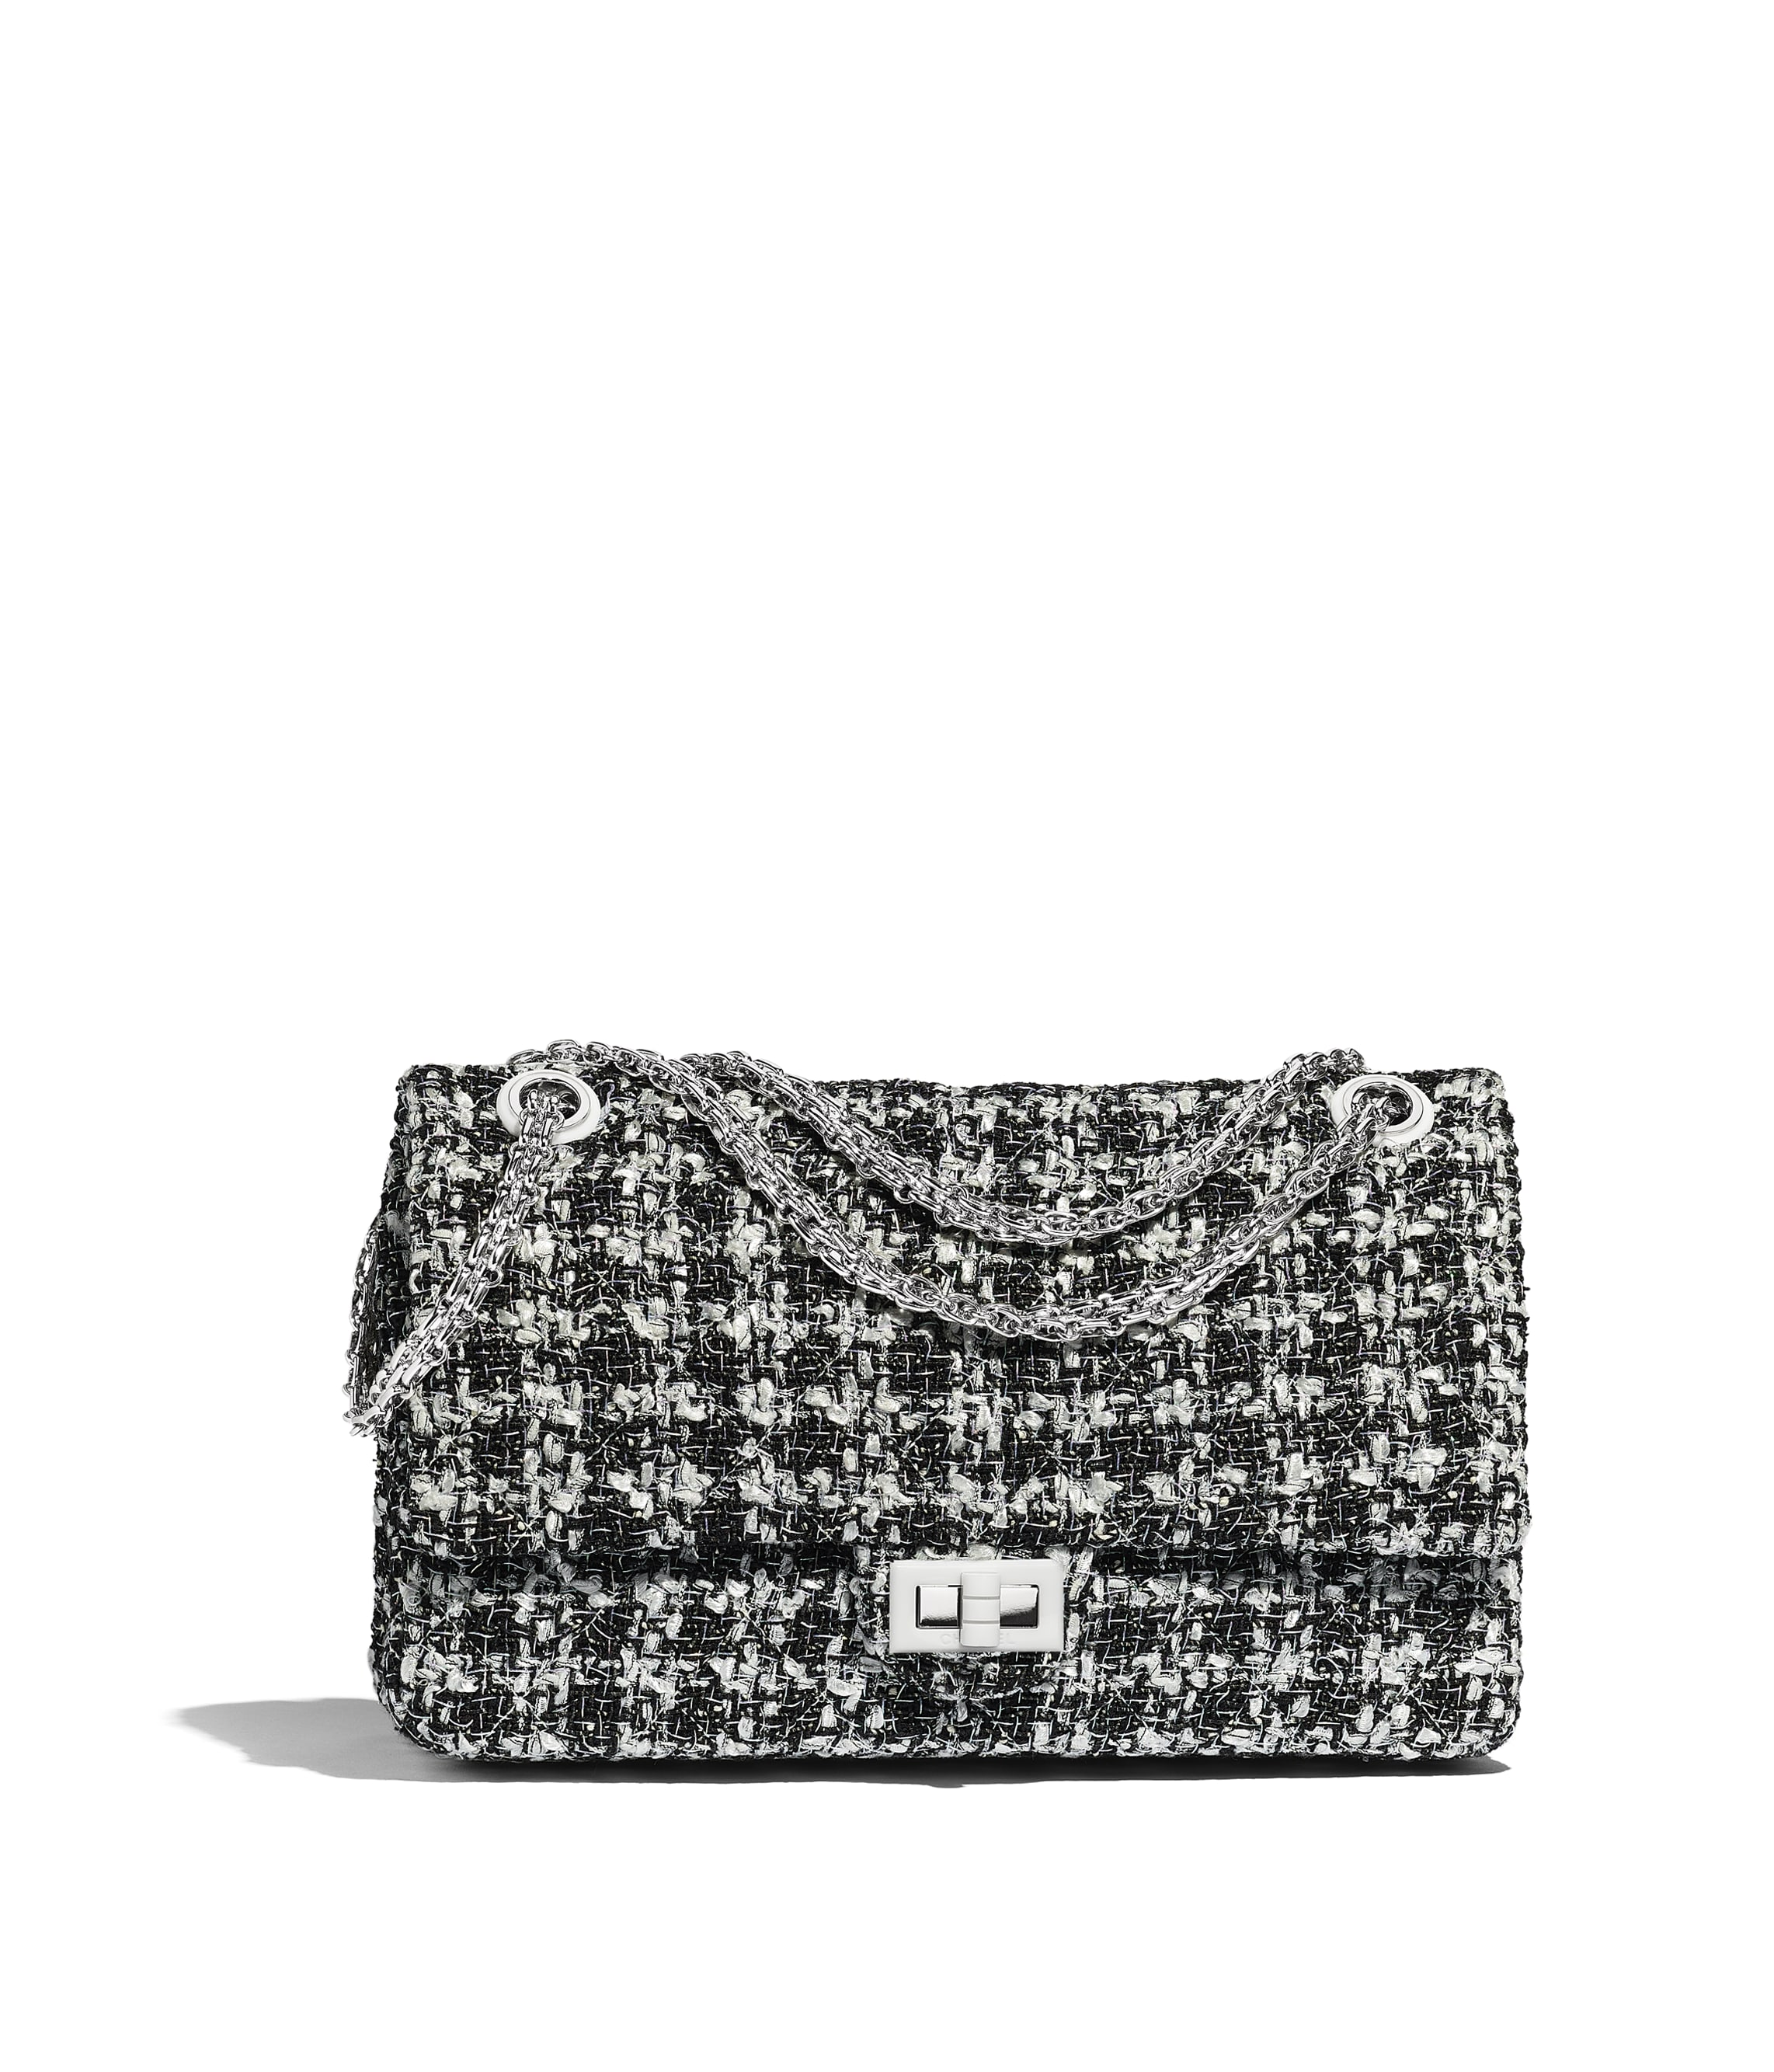 4eaffdcaed9708 2.55 Handbags - Handbags - CHANEL